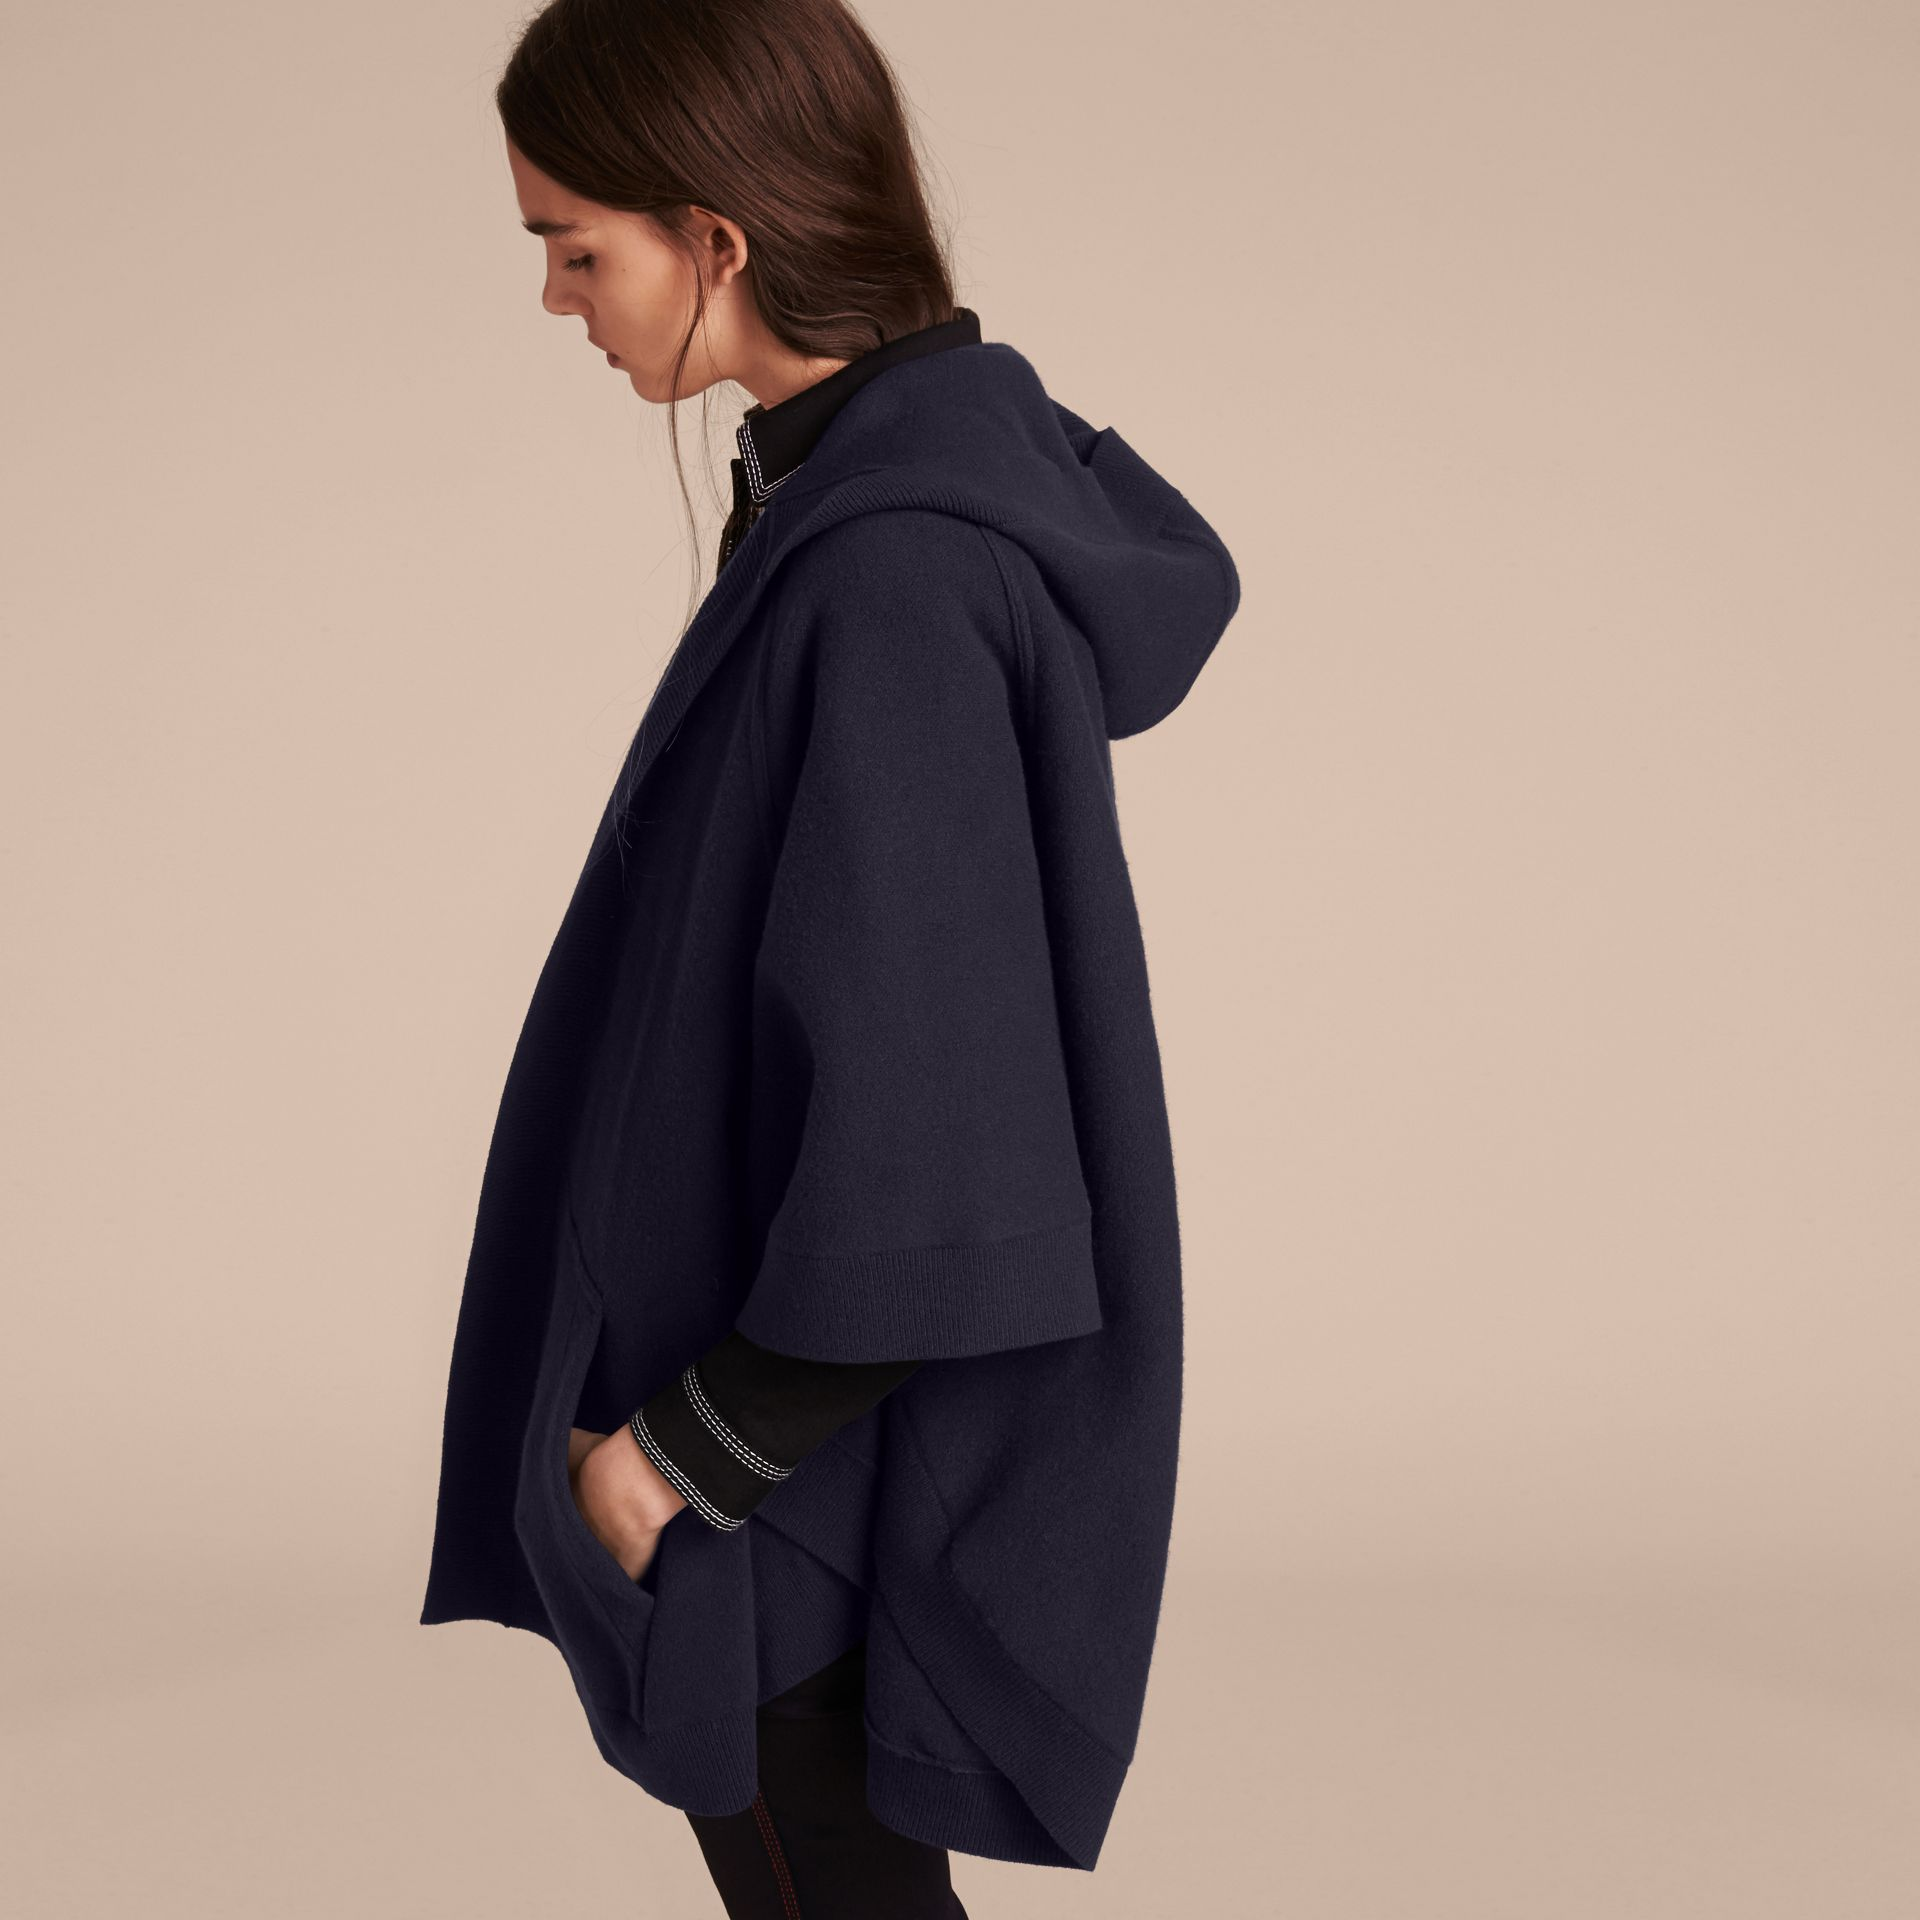 Wool Cashmere Blend Hooded Poncho in Navy/black - Women | Burberry United States - gallery image 2